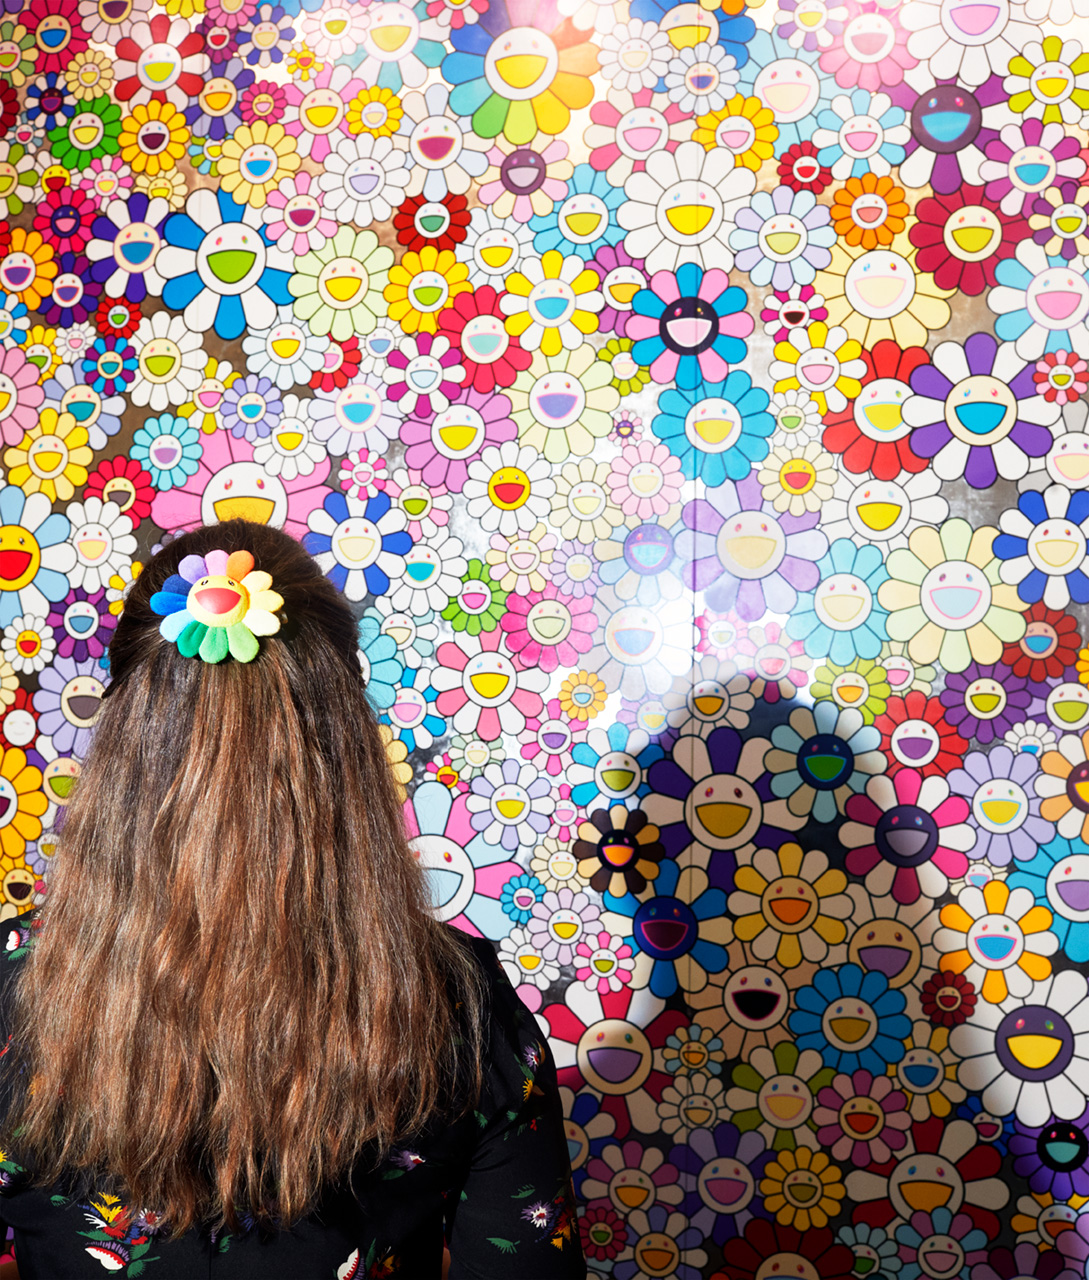 TAKASHI MURAKAMI | THE NEW YORKER | LANDON NORDEMAN